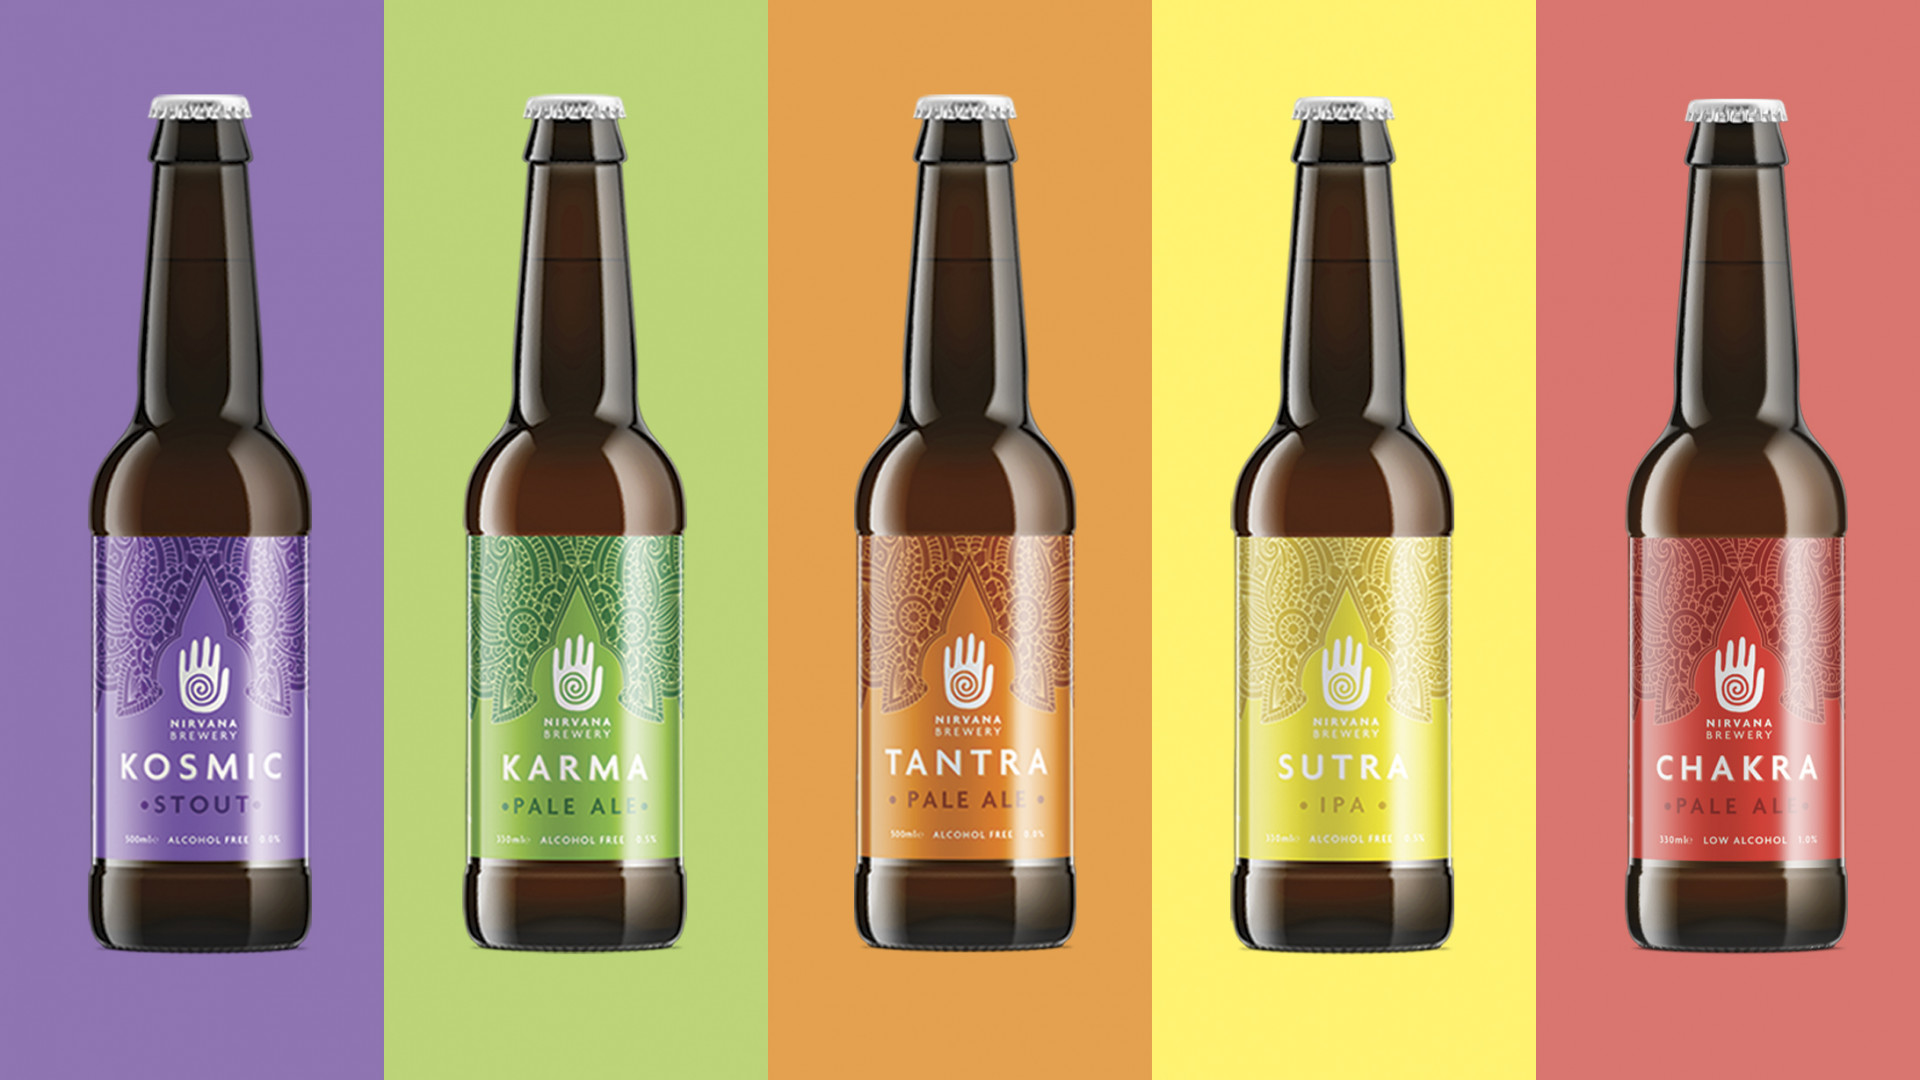 Nirvana Beer Co.'s selection of alcohol-free beers